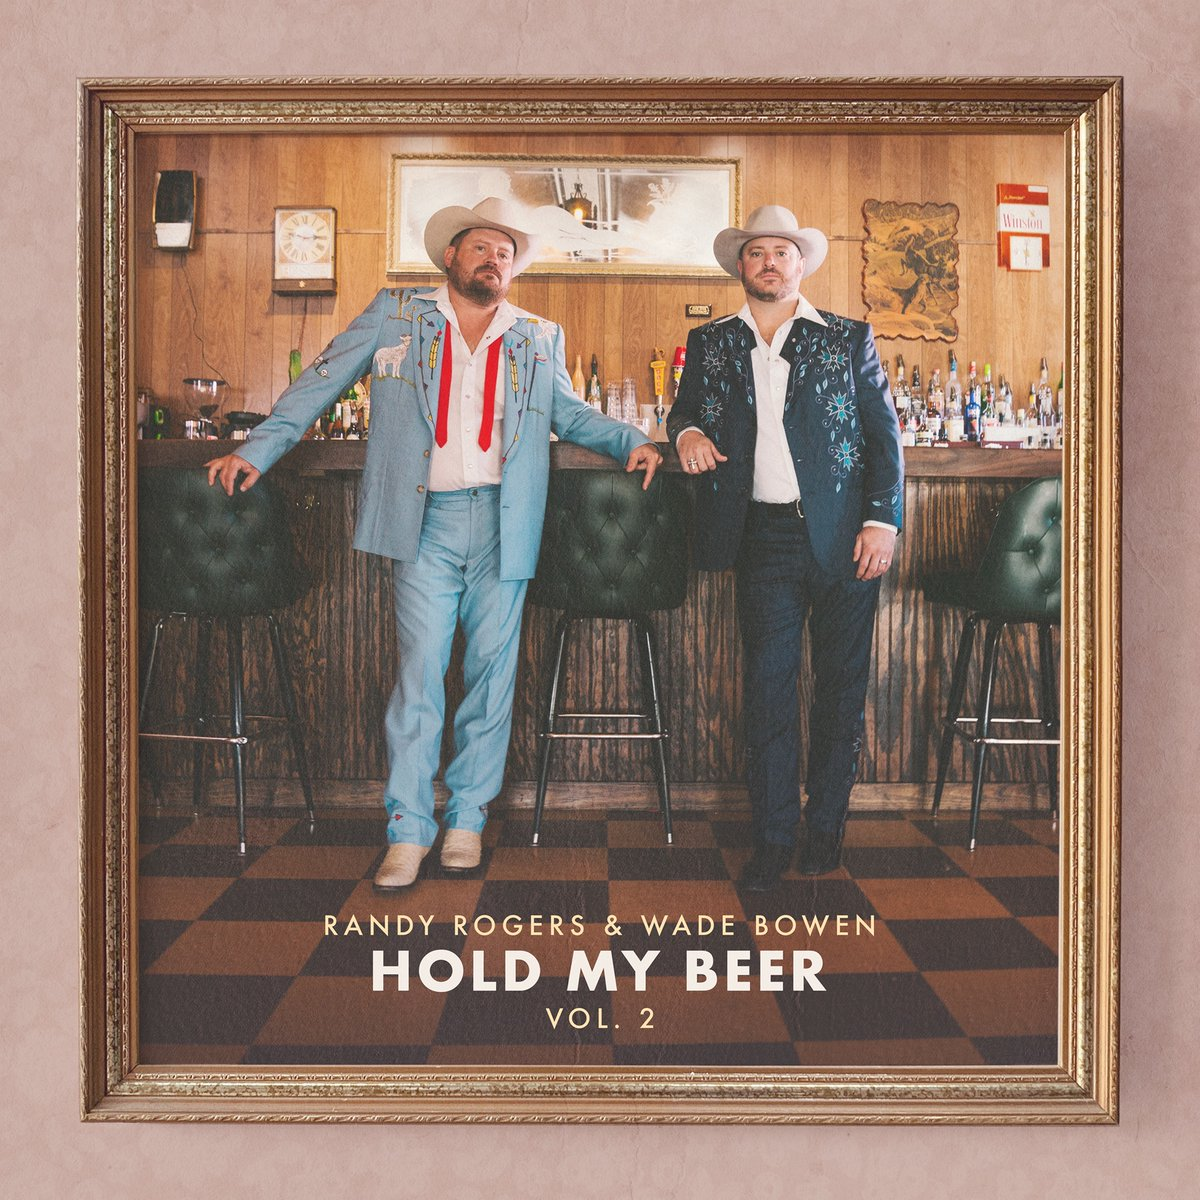 .@hmbandwt Vol. 2 by @randyrogersband & @wadebowen is out now! Check it out here: bstlnk.to/HoldMyBeerVol2  Cheers! 🍺 🎶